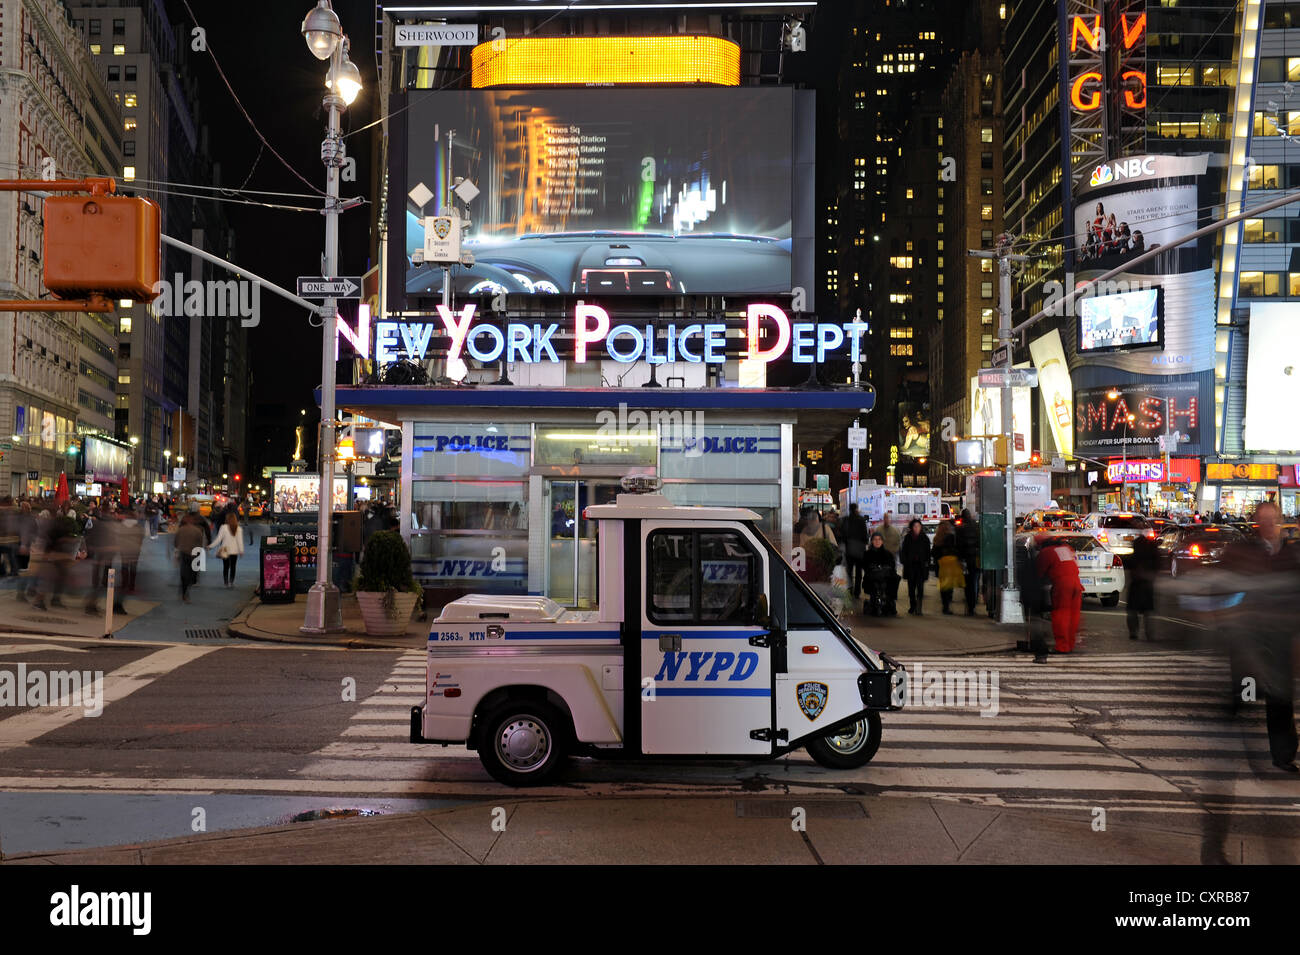 New york police dating